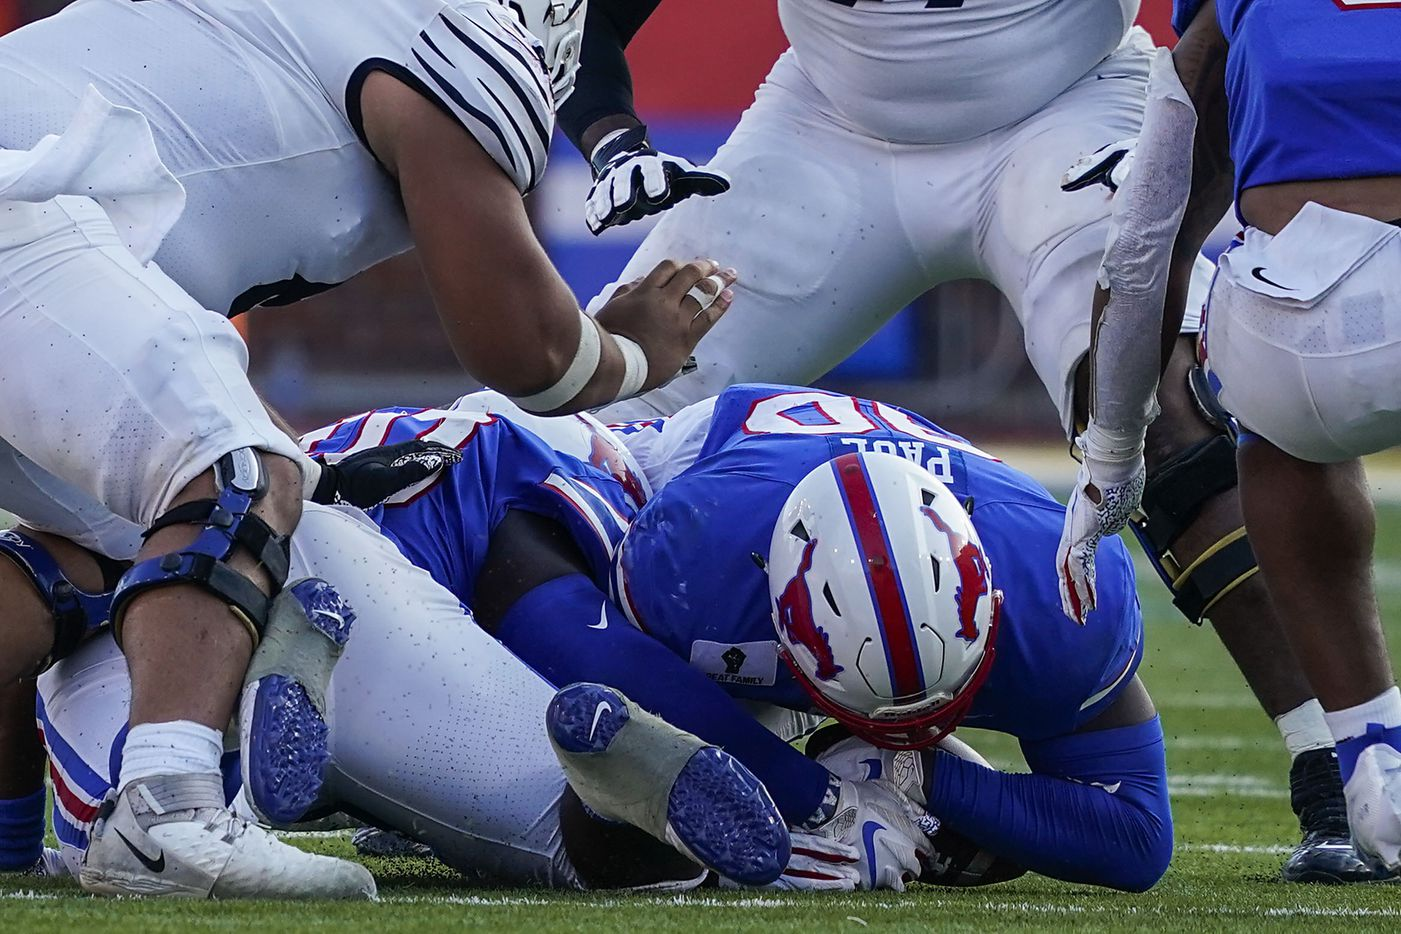 SMU defensive end Nelson Paul (90) reaches for a Memphis fumble that was recovered by the Mustangs with just over a minute left to play, setting up a game-winning field goal during the second half of an NCAA football game at Ford Stadium on Saturday, Oct. 3, 2020, in Dallas.